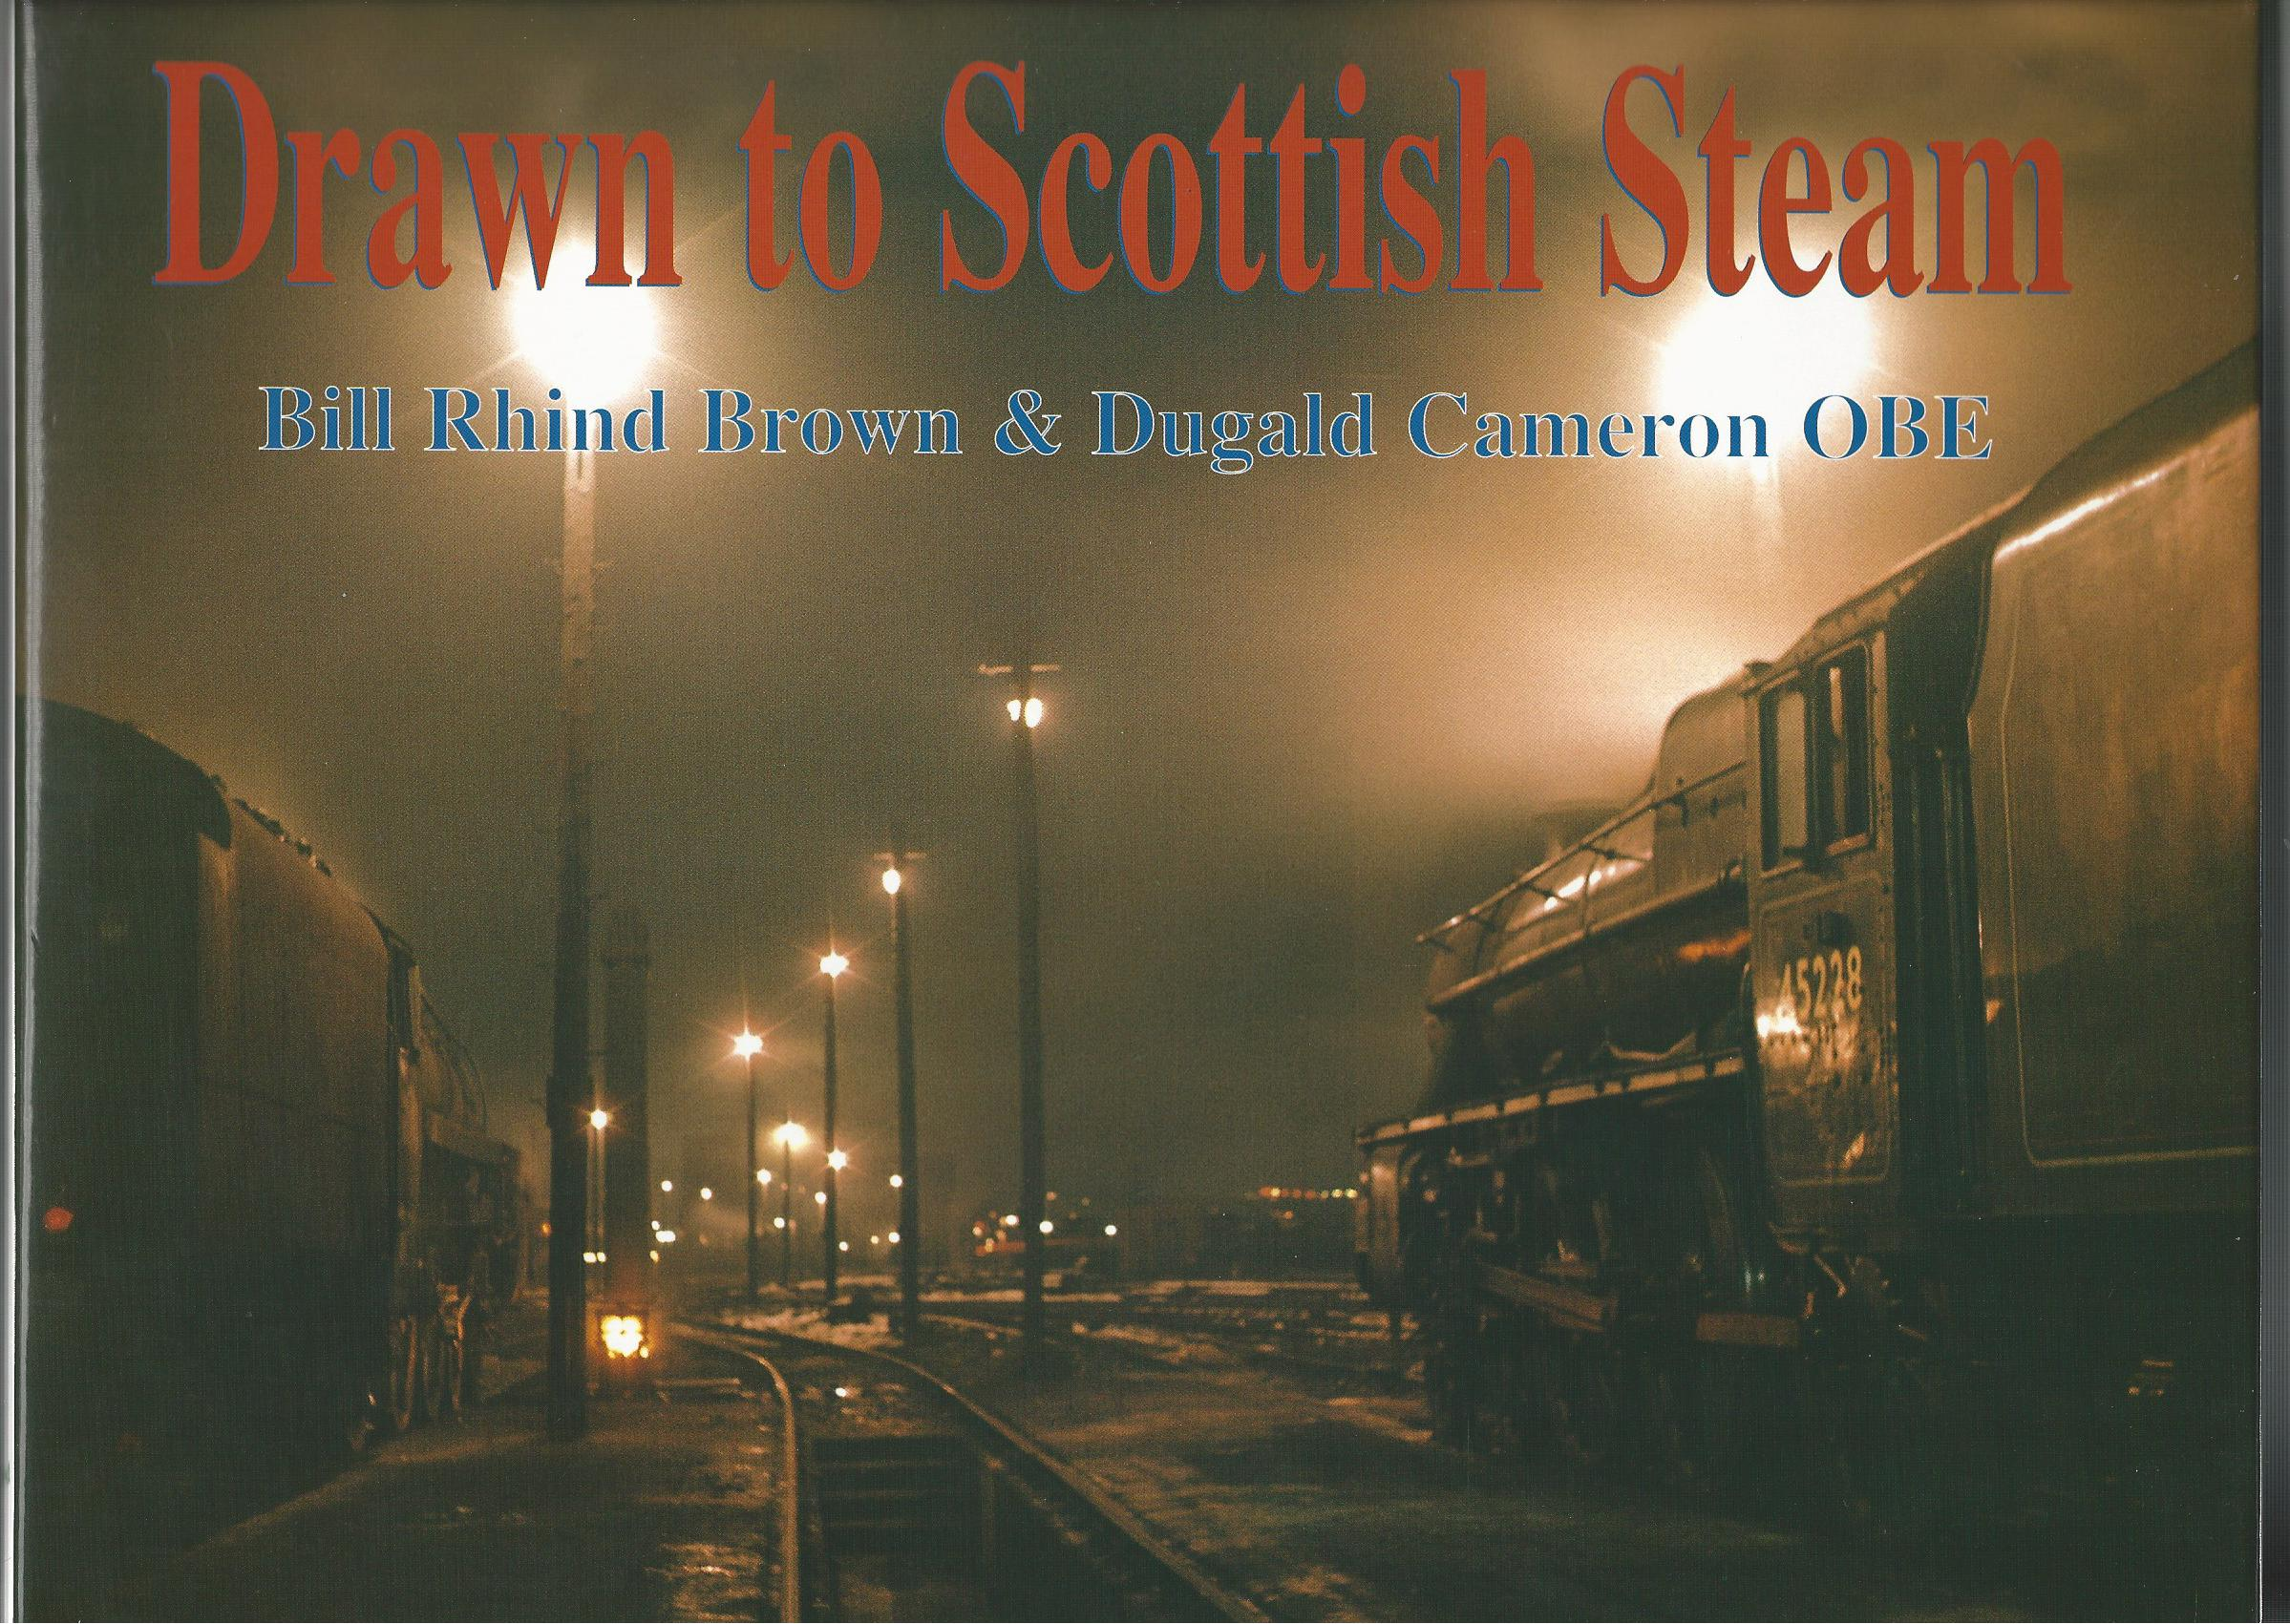 Image for Drawn to Scottish Steam.